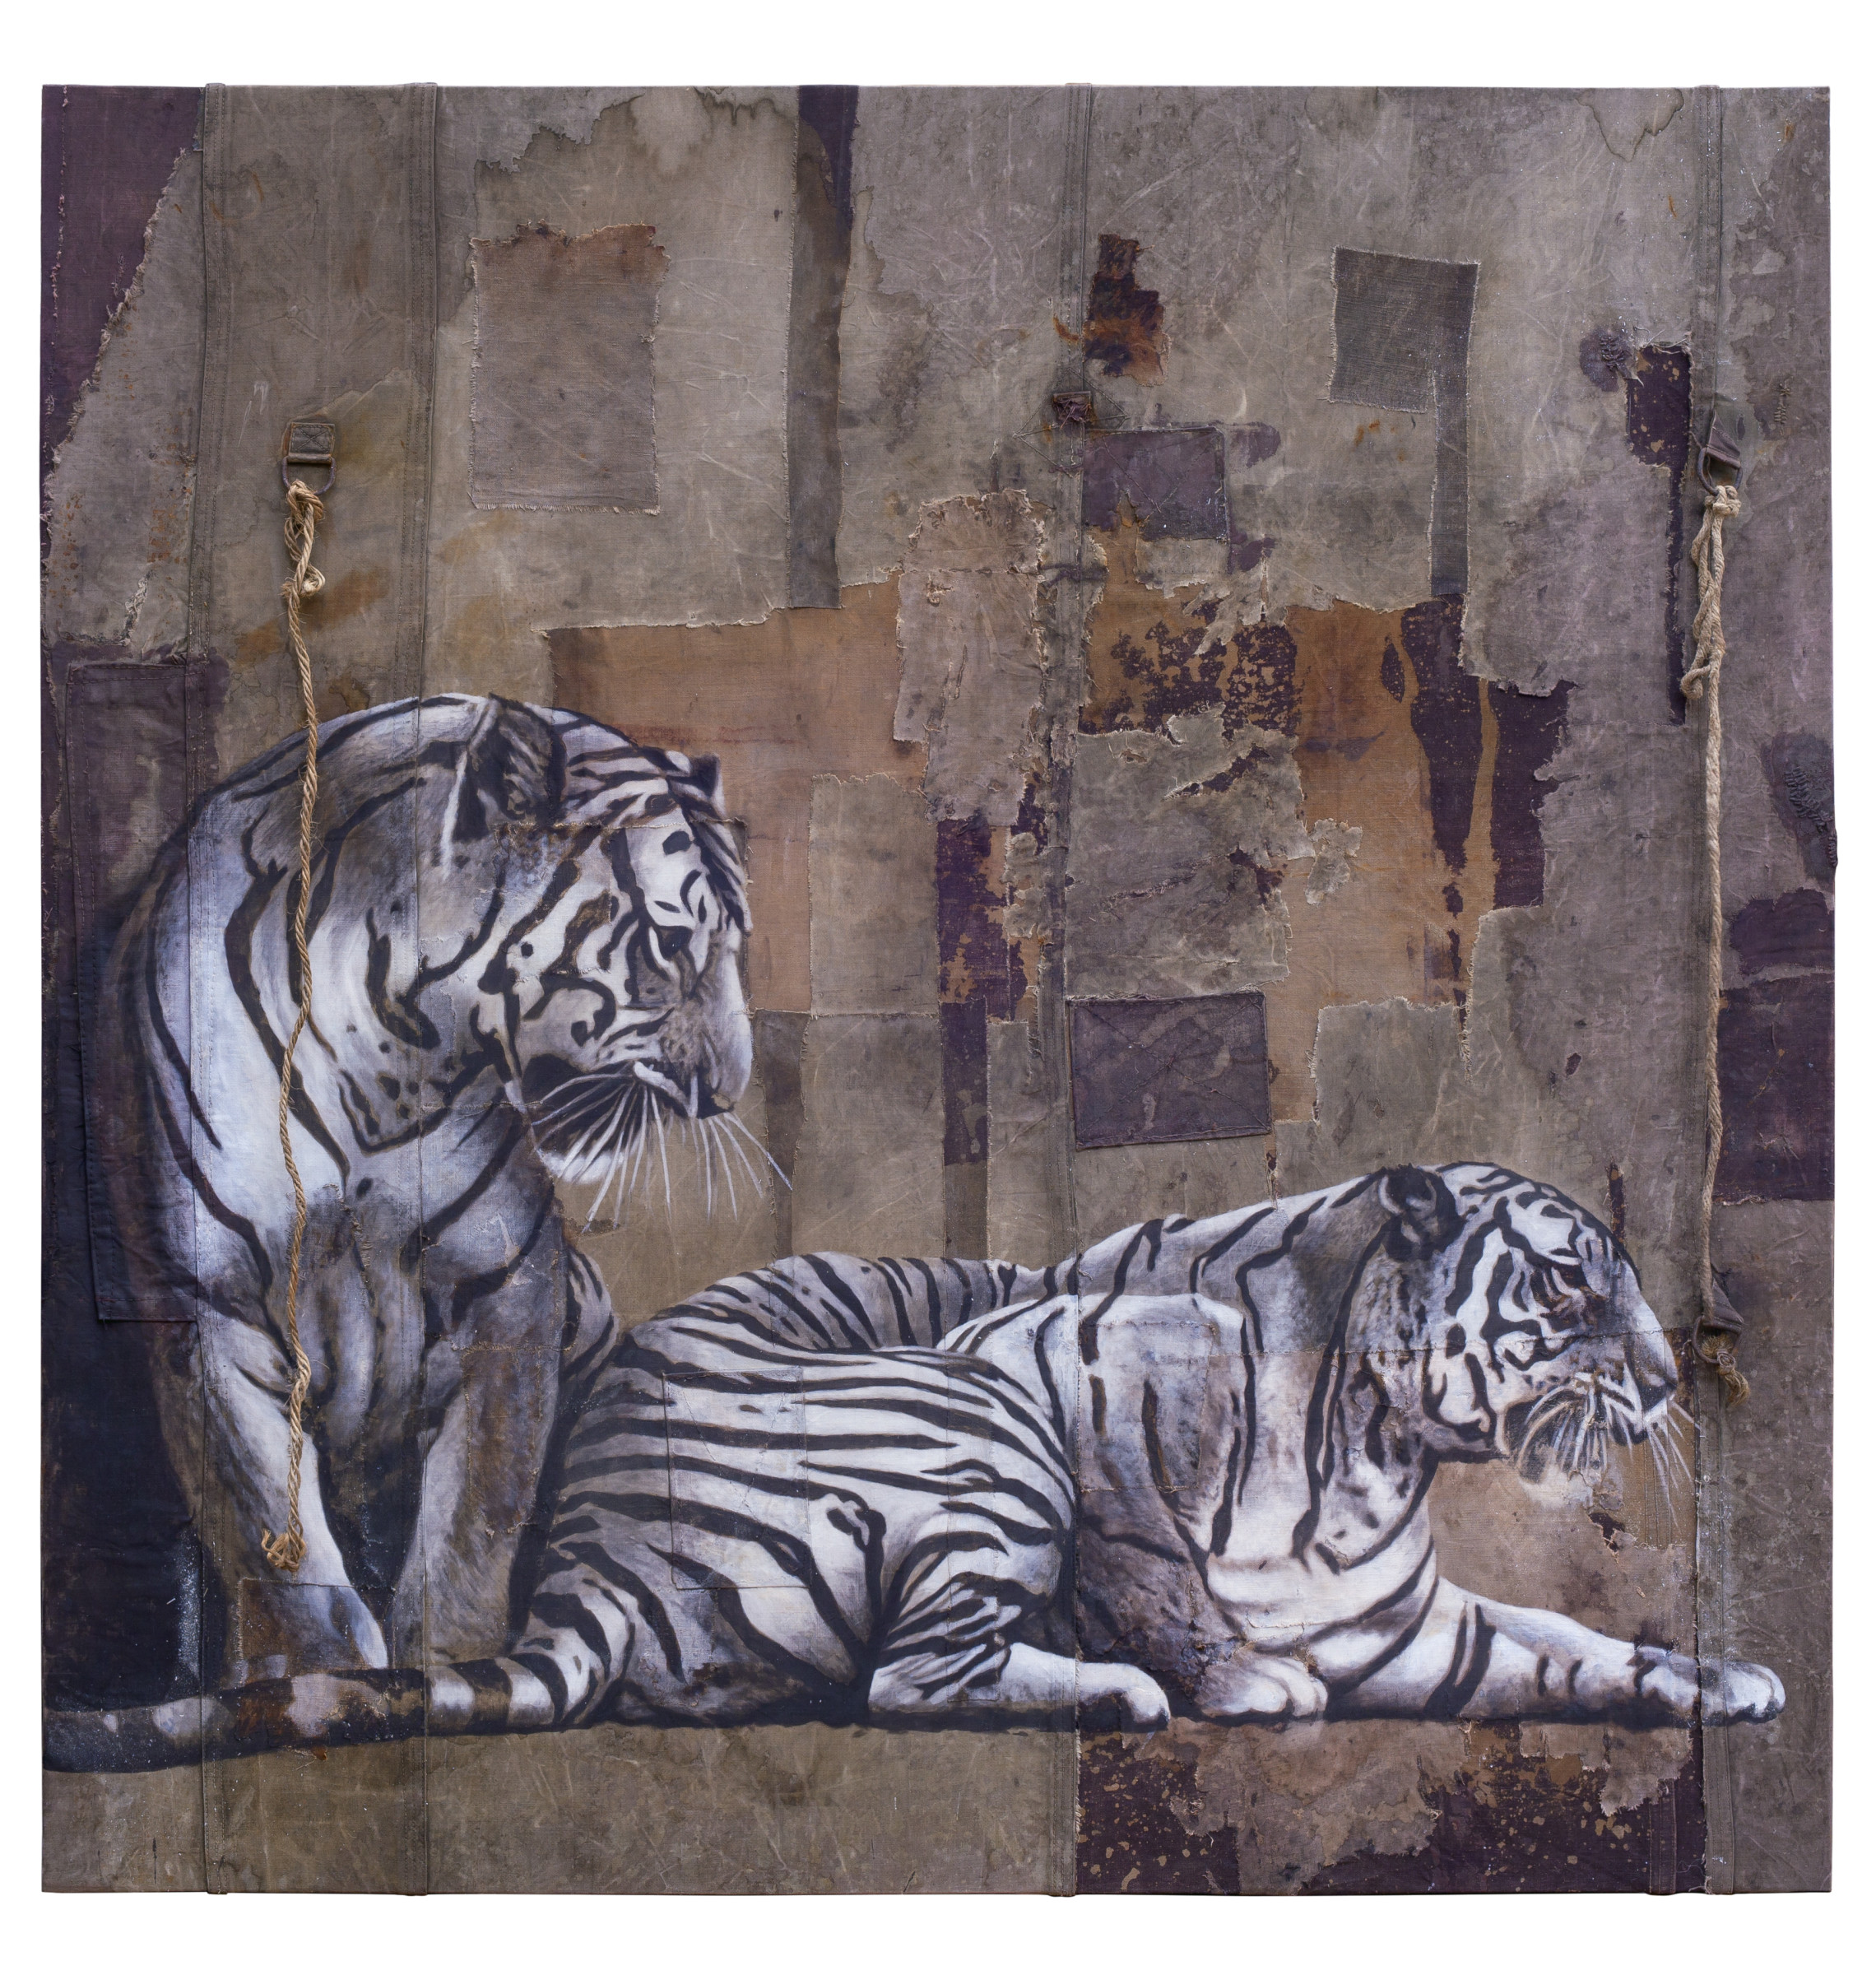 <span class=&#34;link fancybox-details-link&#34;><a href=&#34;/artists/44-luca-pignatelli/works/4234-luca-pignatelli-two-tigers-2013/&#34;>View Detail Page</a></span><div class=&#34;artist&#34;><strong>Luca Pignatelli</strong></div> <div class=&#34;title&#34;><em>Two Tigers</em>, 2013</div> <div class=&#34;medium&#34;>Mixed media on canvas</div> <div class=&#34;dimensions&#34;>210 x 210 cm<br /> Price on request</div>